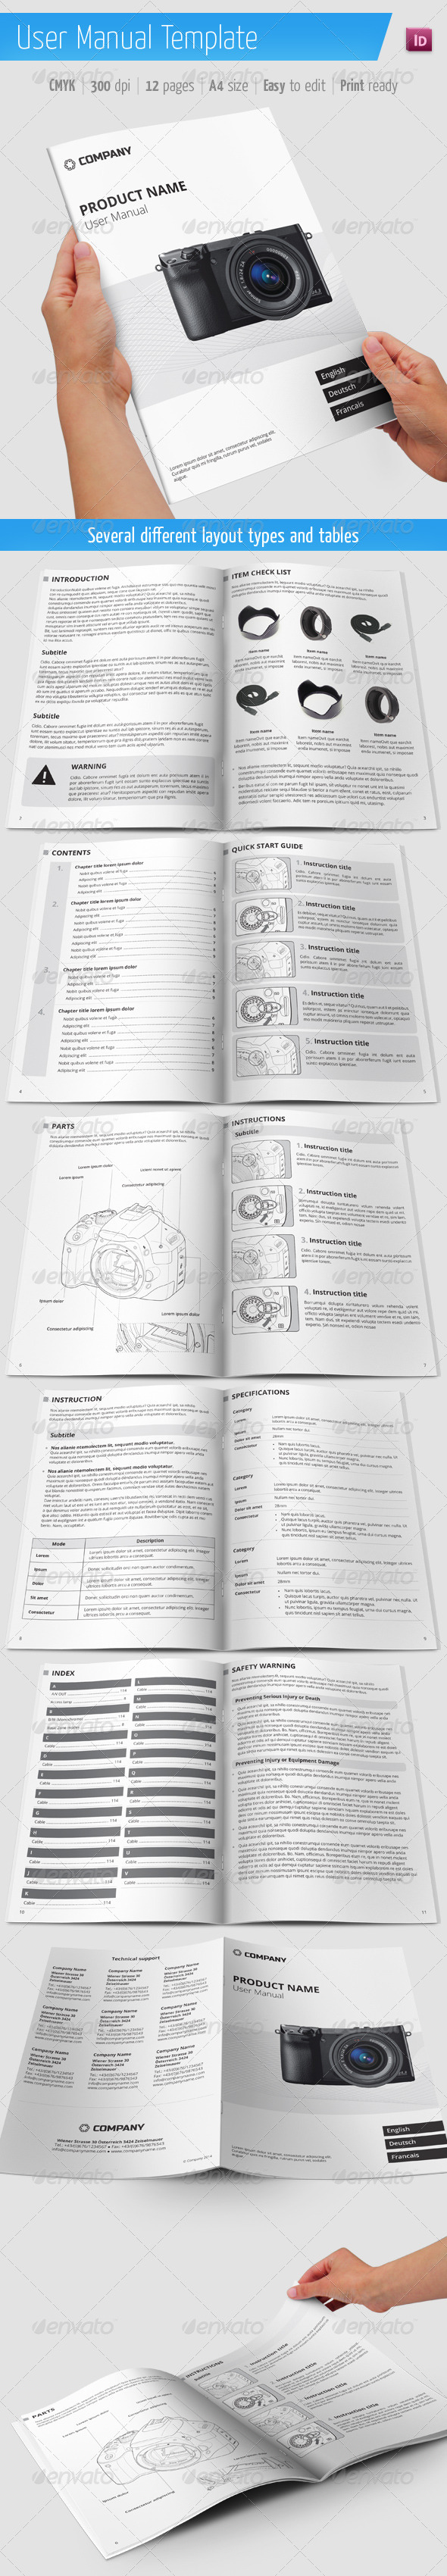 GraphicRiver User Manual Template 6477700